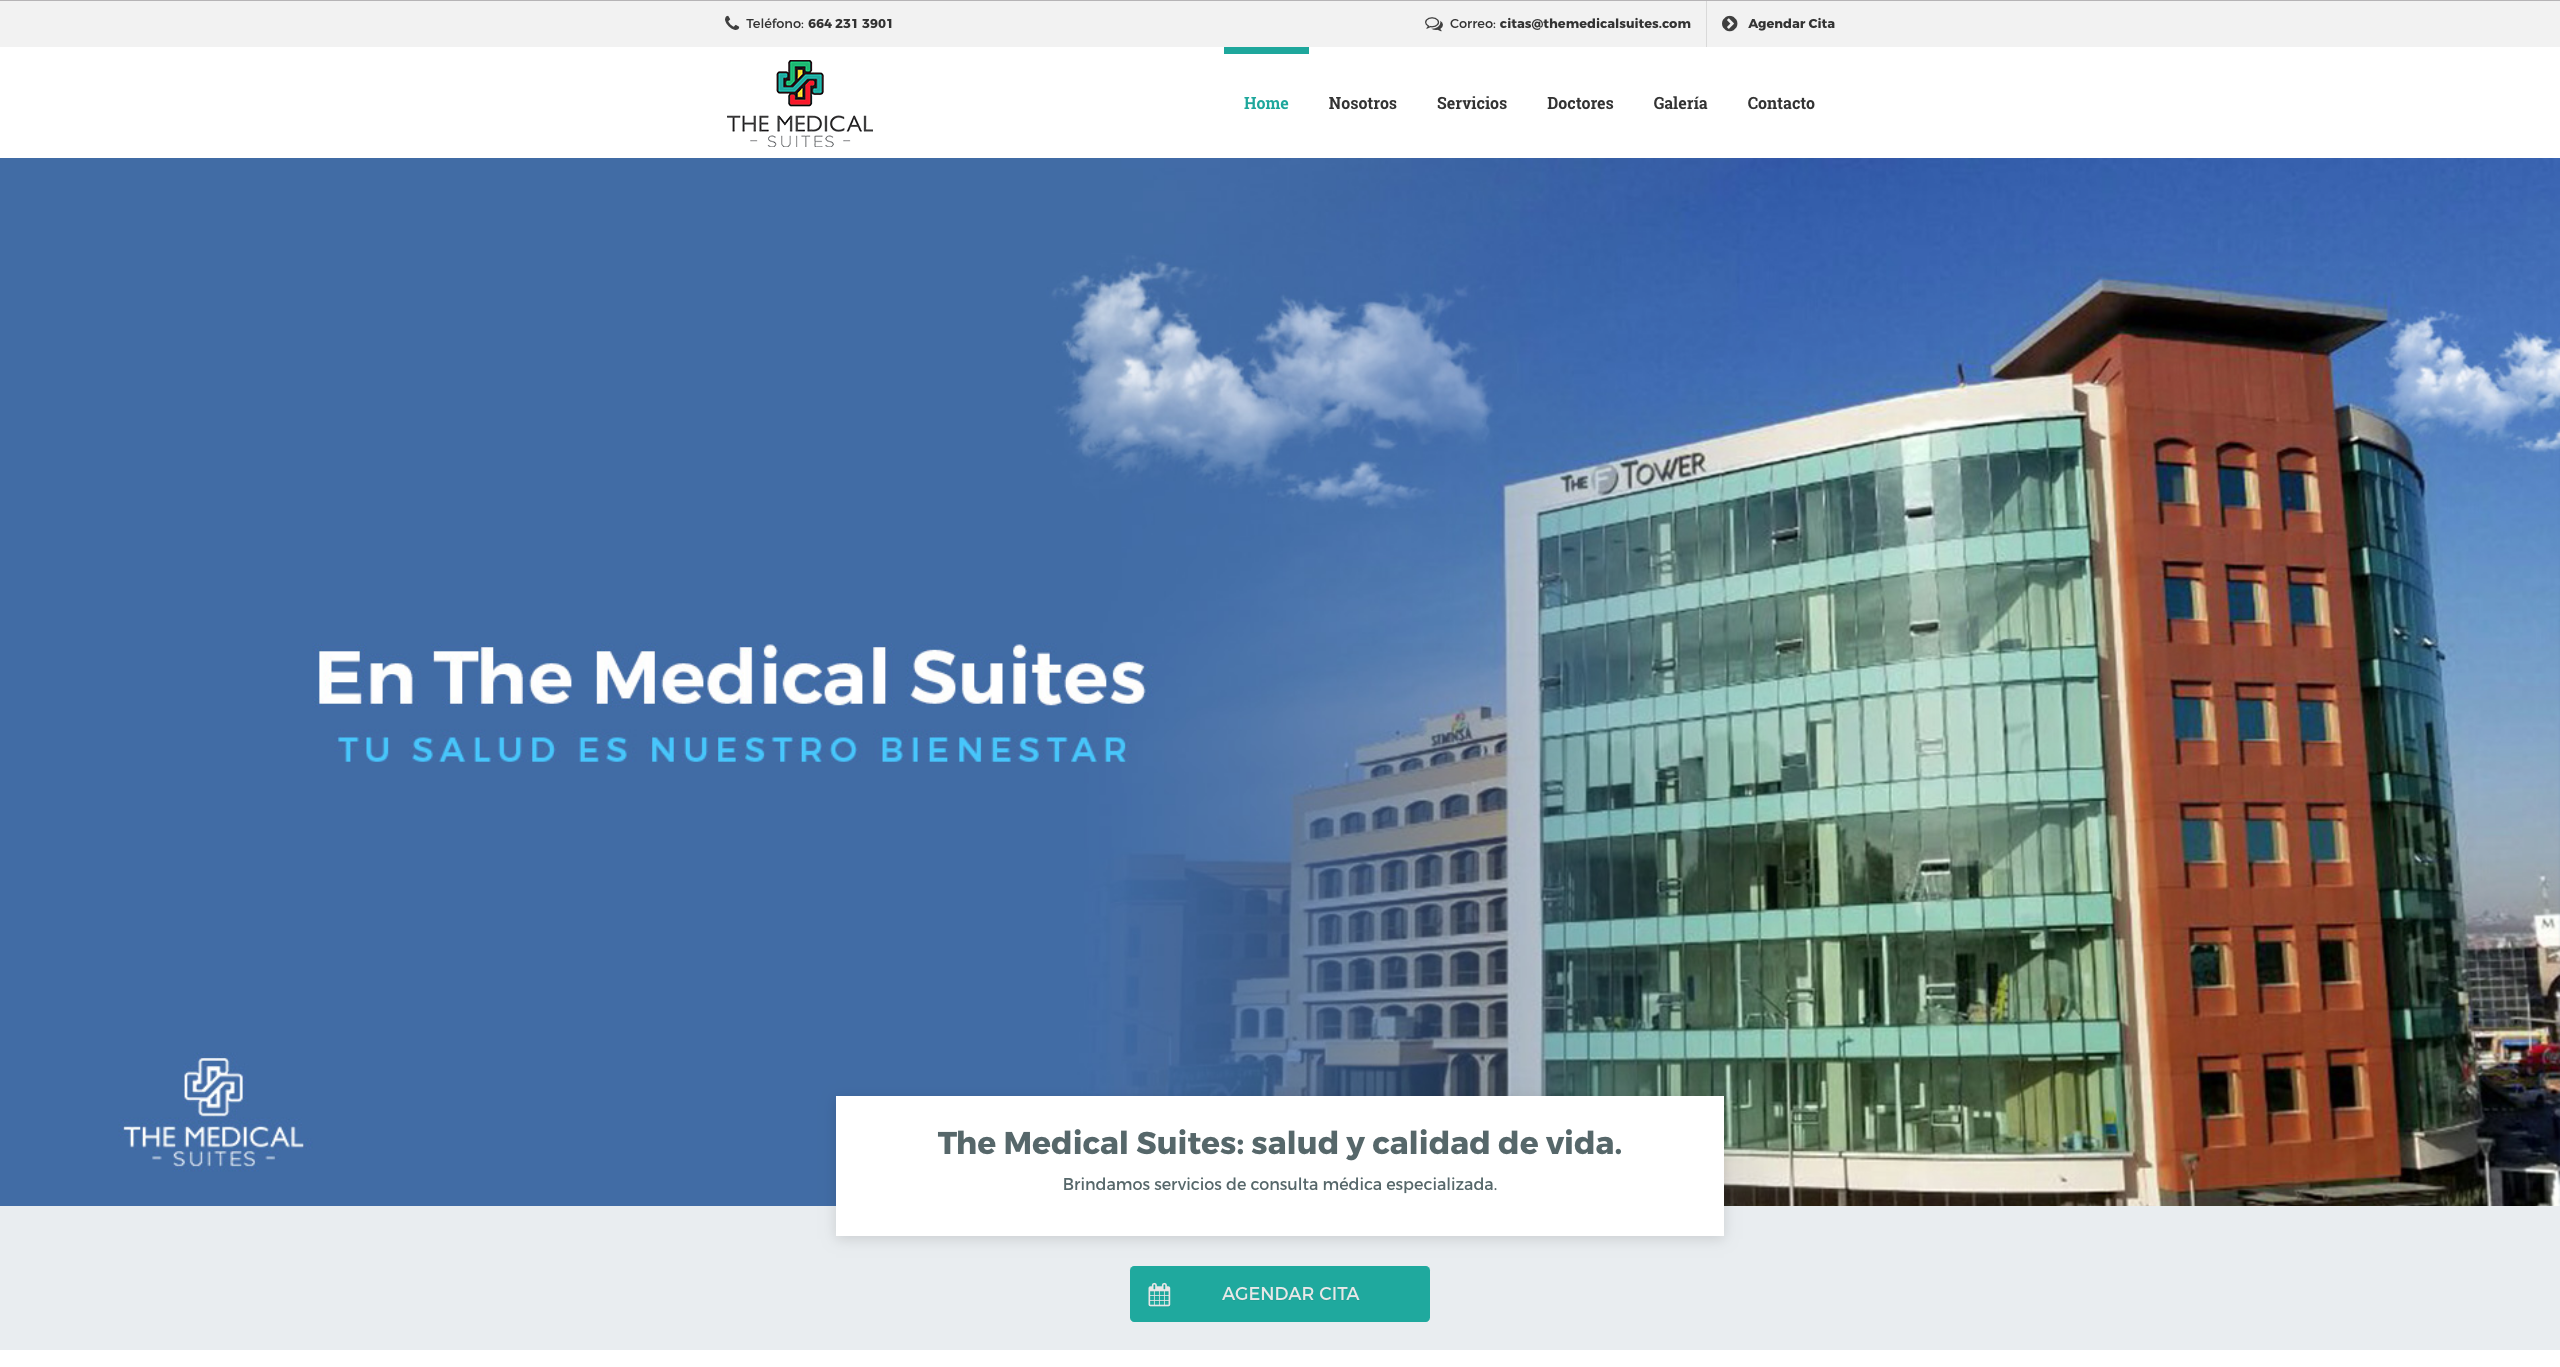 The Medical Suites